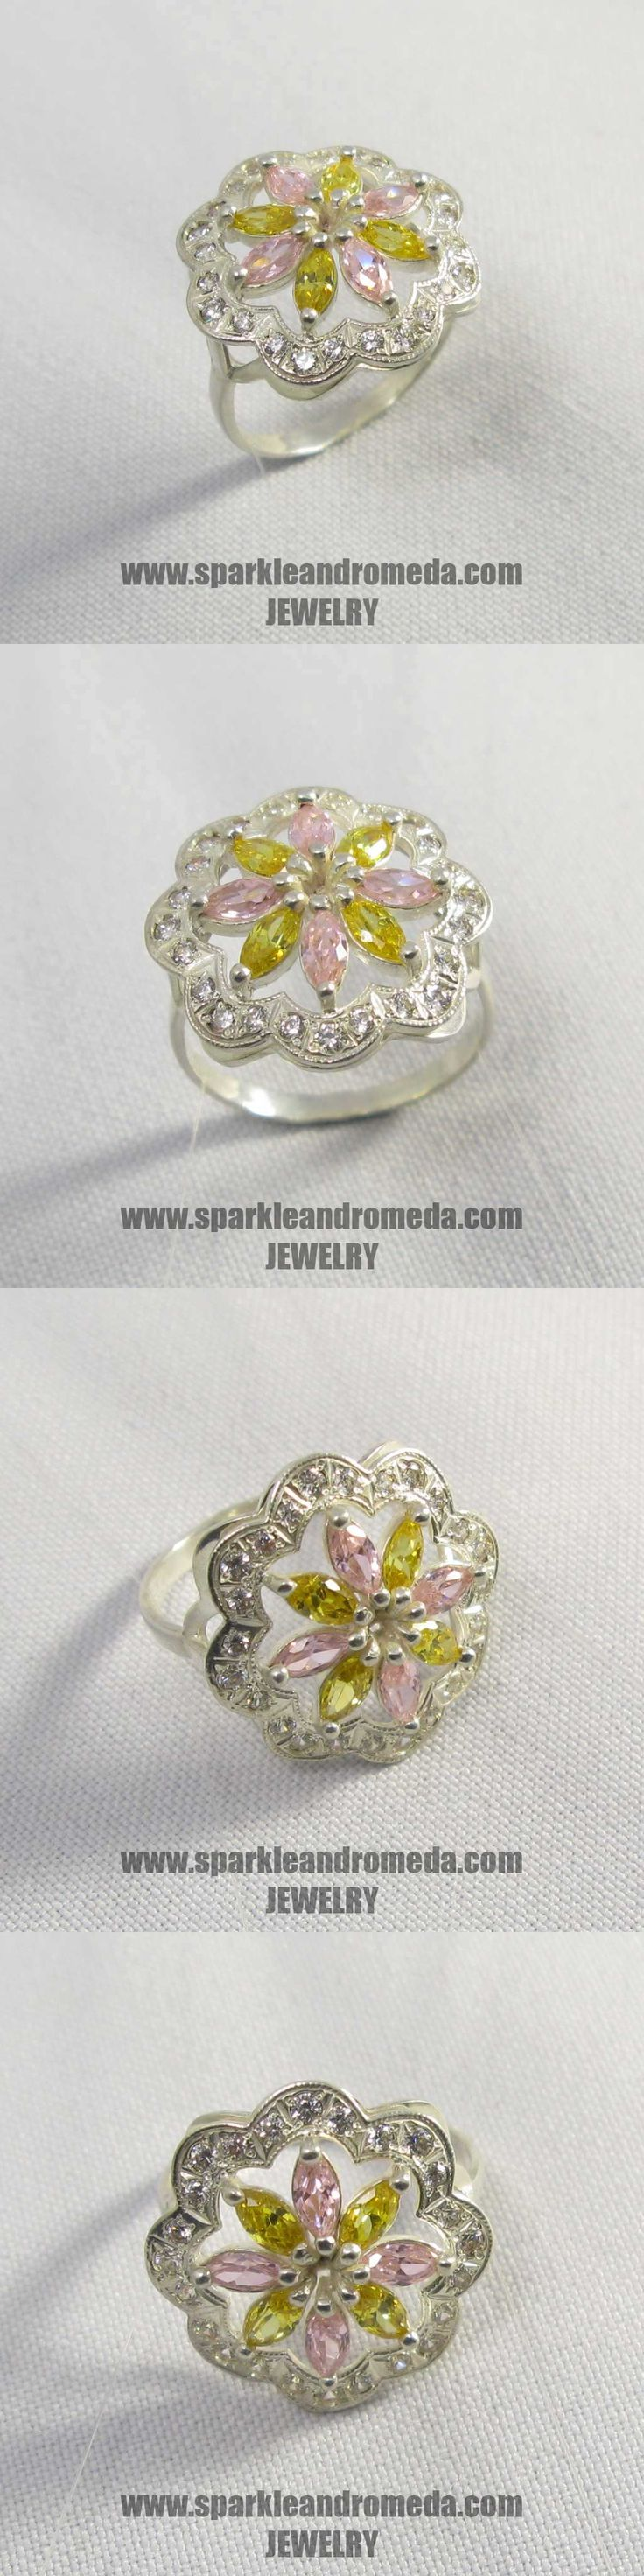 Sterling 925 silver ring with 4 marquise 5×2,5 mm pink morganite color 4 marquise 5×2,5 mm golden beryl color and 16 round 1,25 mm white color cubic zirconia gemstones.